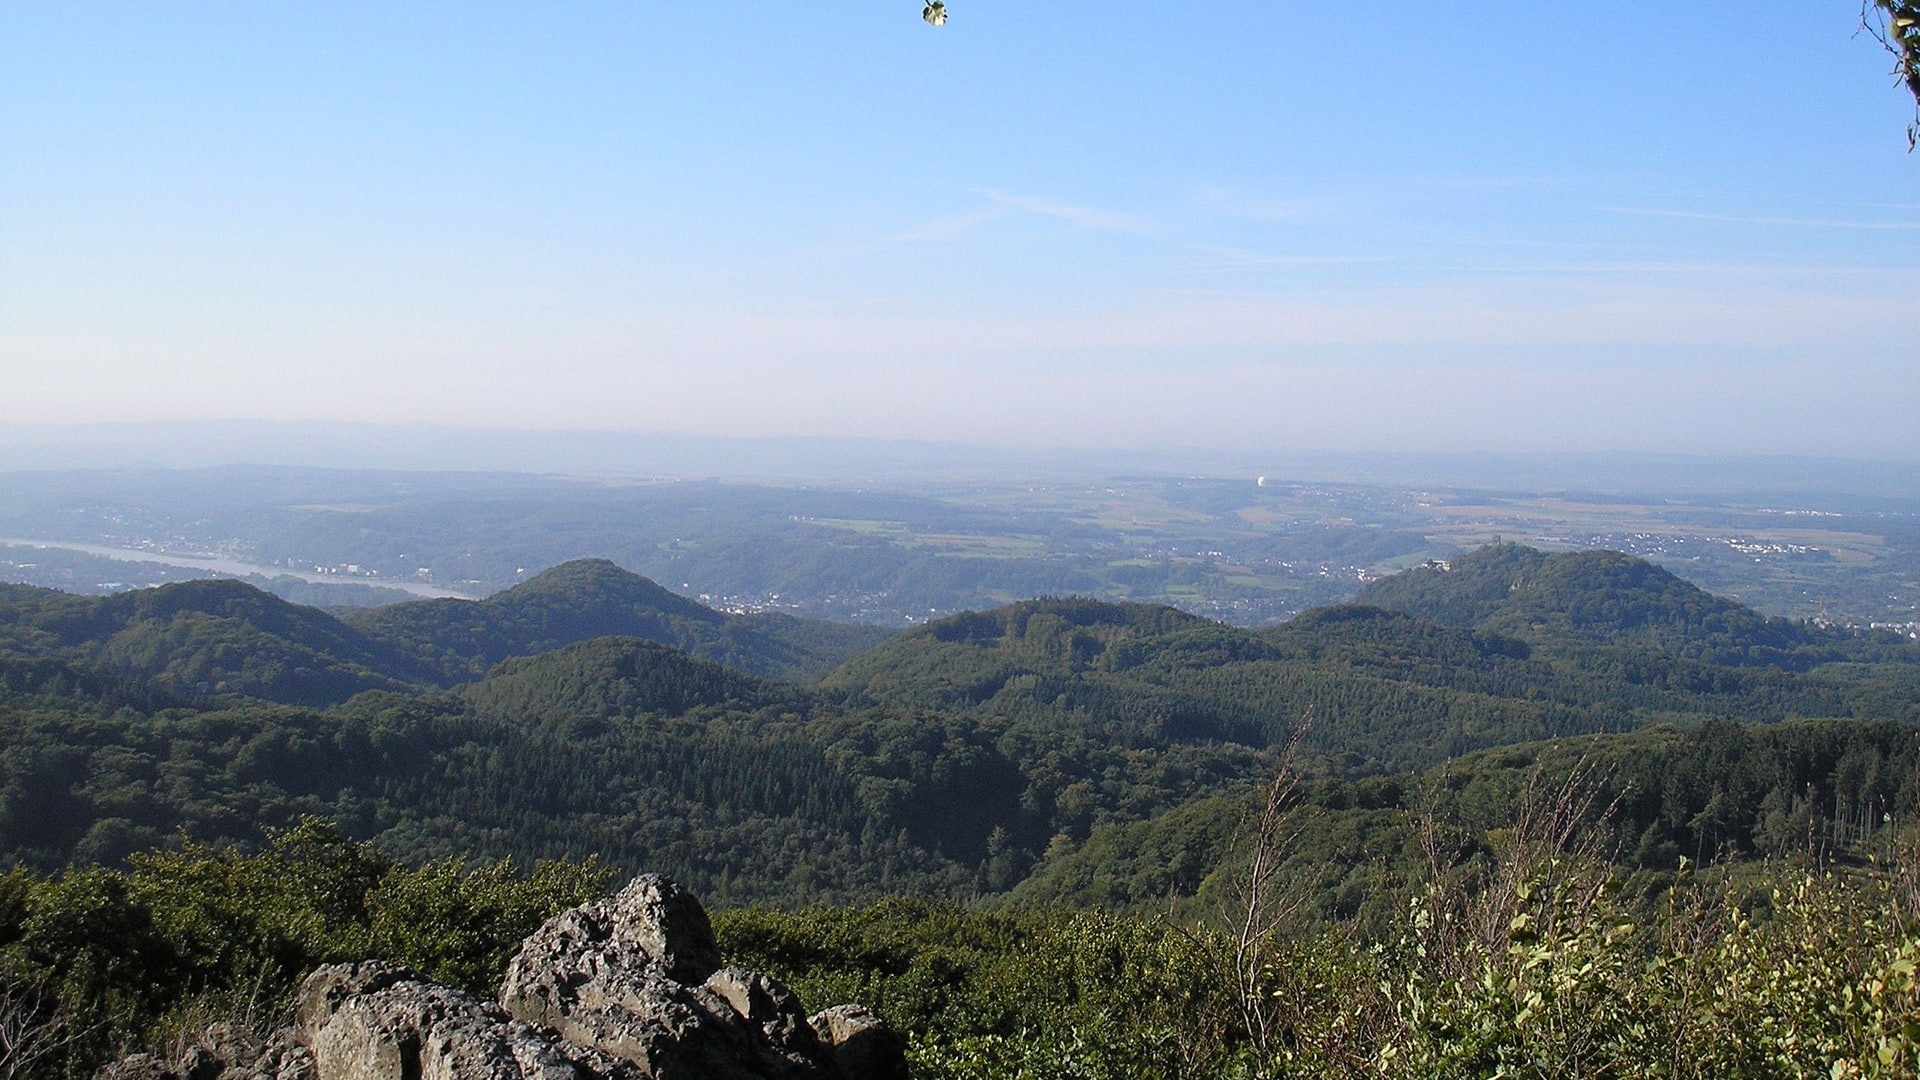 Siebengebirge (Seven Mountains)